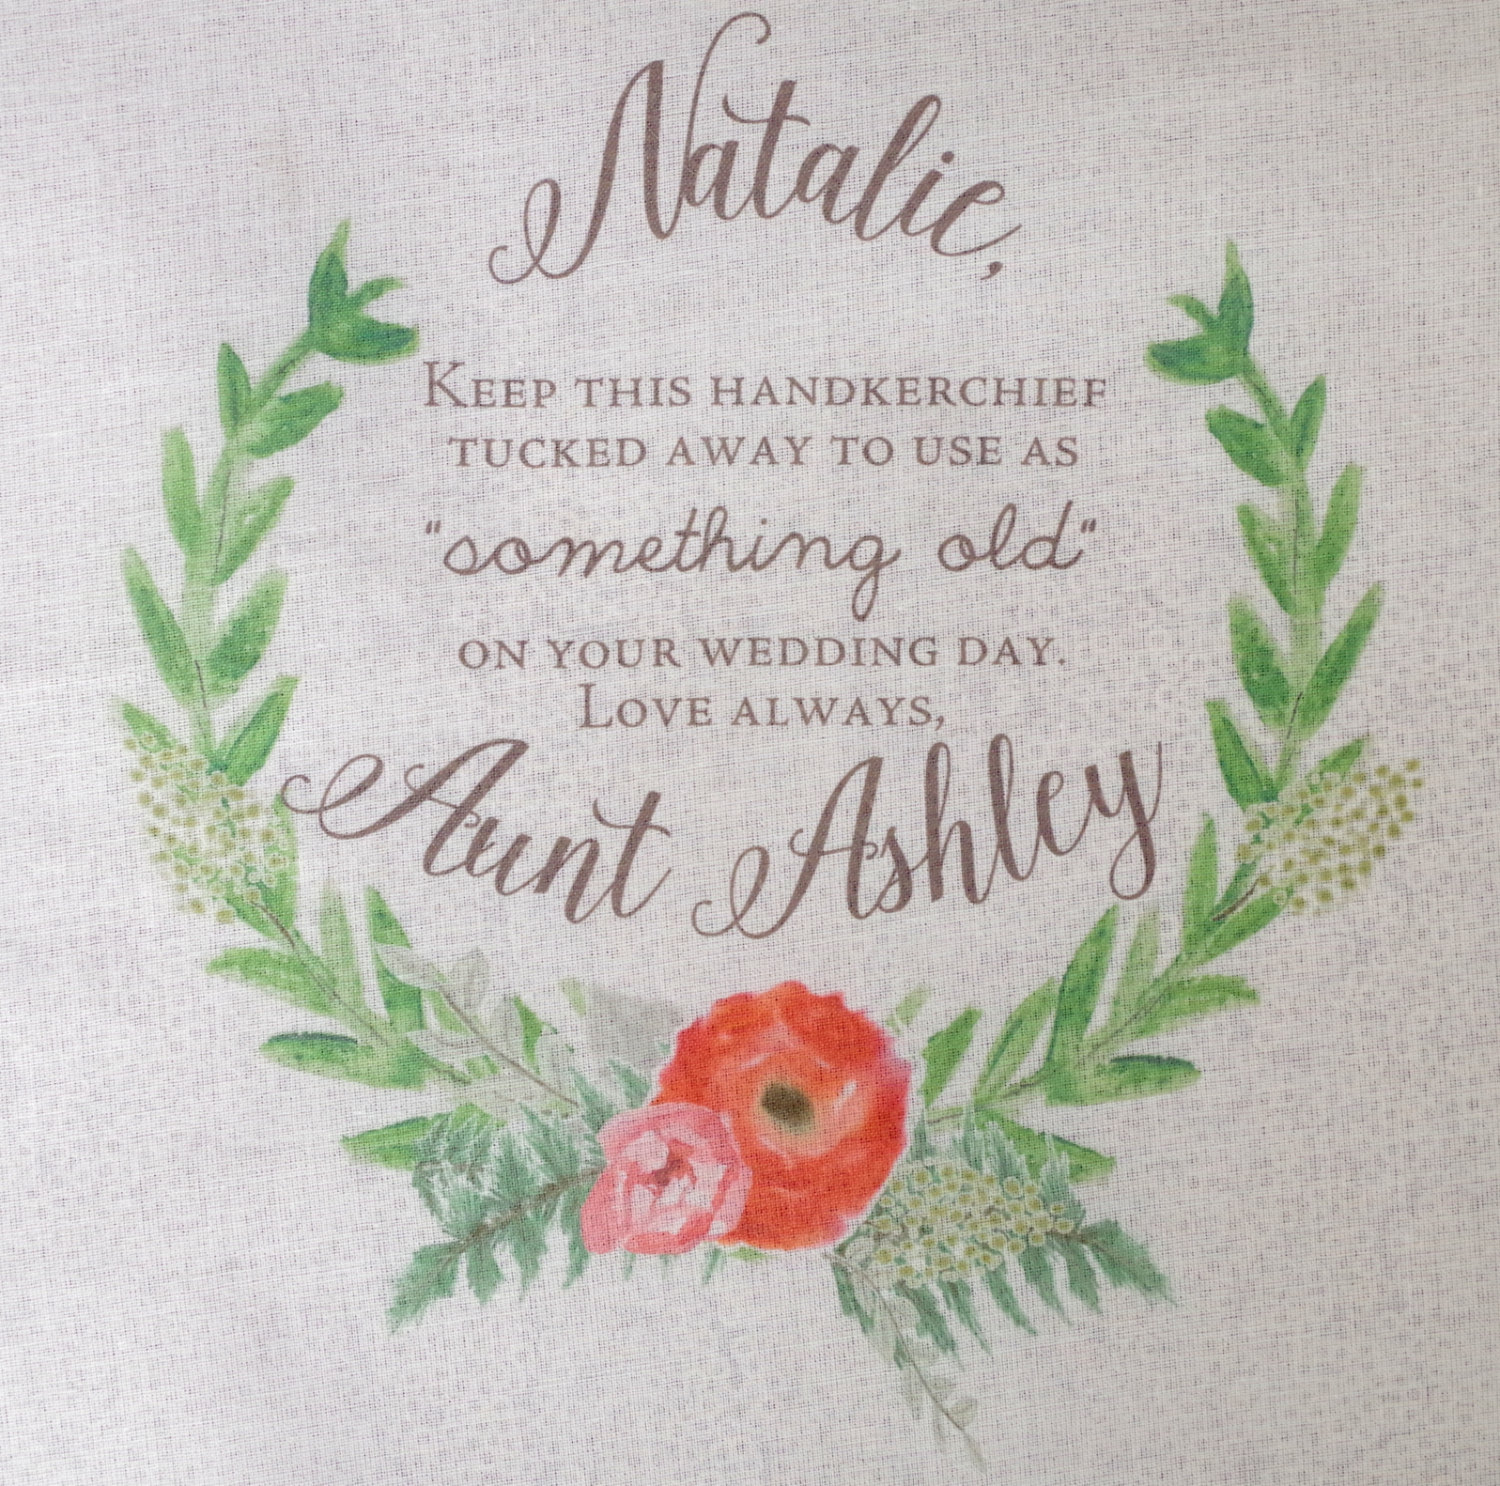 cute something old handkerchief | personalized wedding handkerchiefs | https://emmalinebride.com/gifts/personalized-wedding-handkerchiefs/